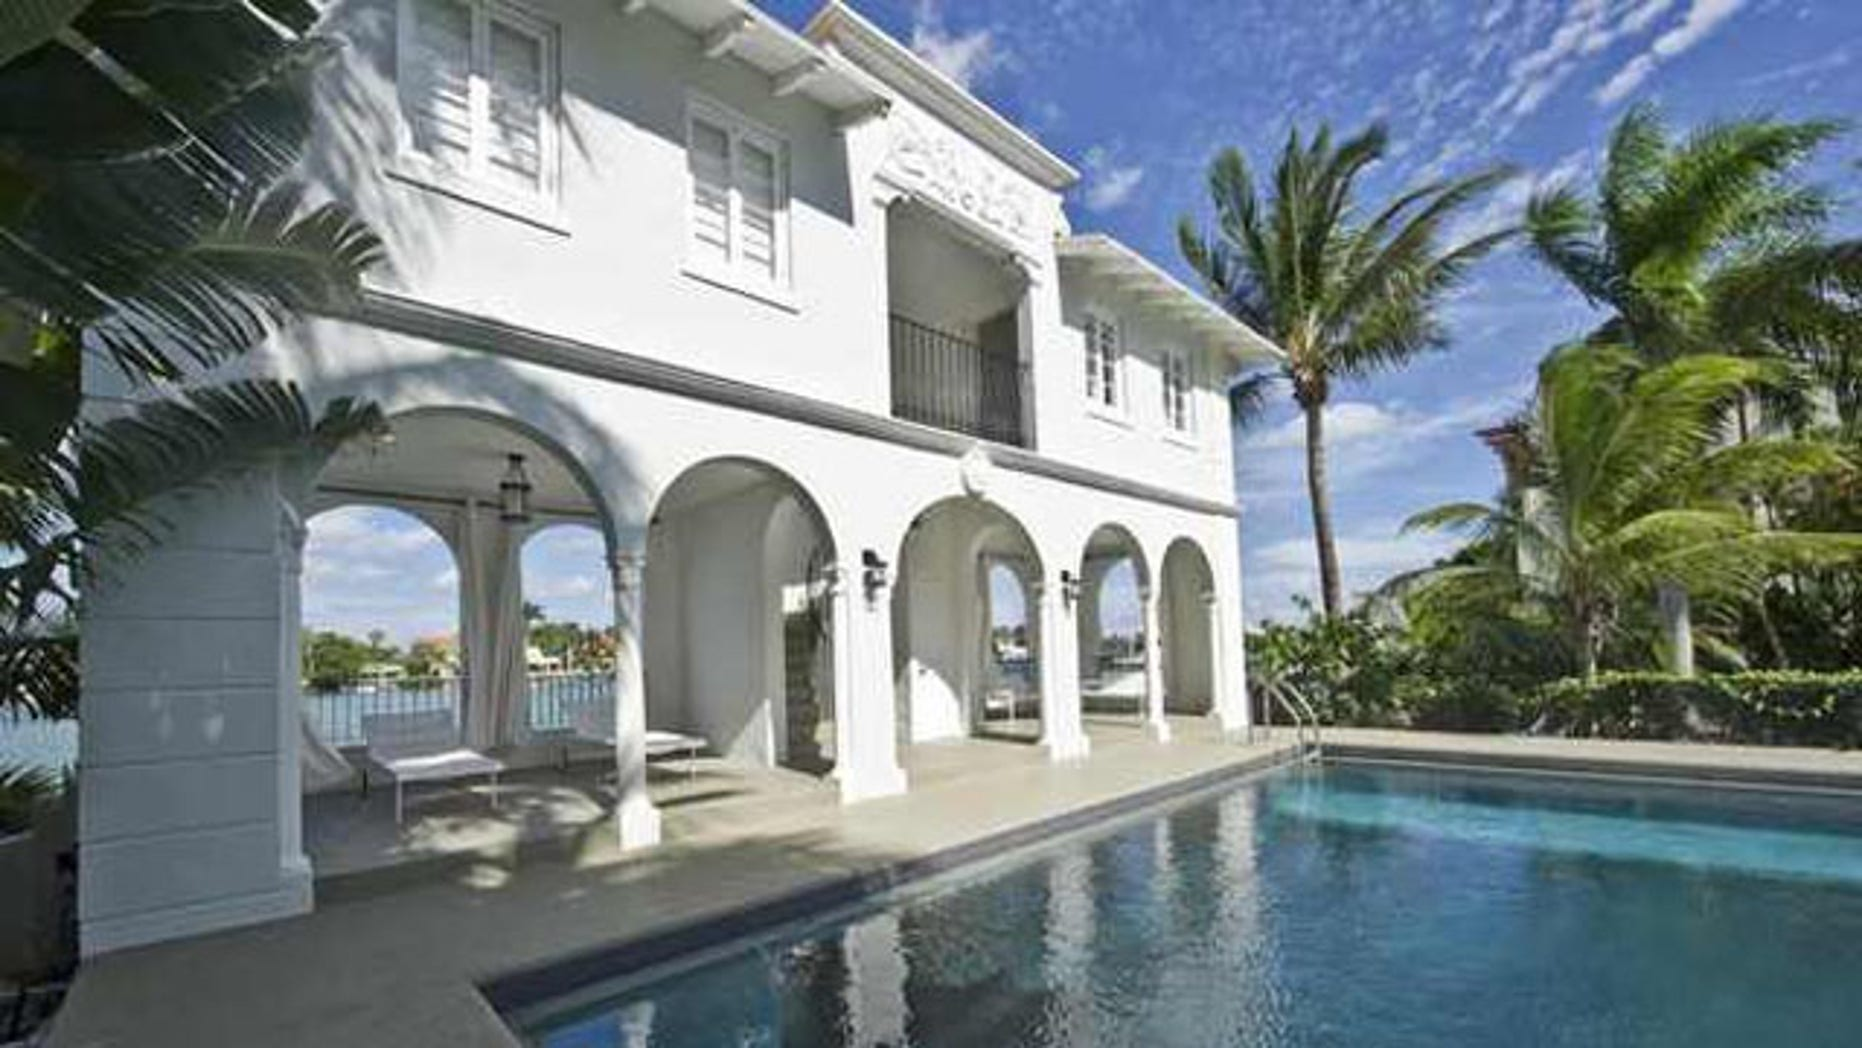 February 8, 2014: The pool house and pool of the waterfront mansion on Palm Island in Miami Beach, once owned by notorious gangster Al Capone, is shown in this photo provided by One Sotheby's International Realty. (REUTERS)